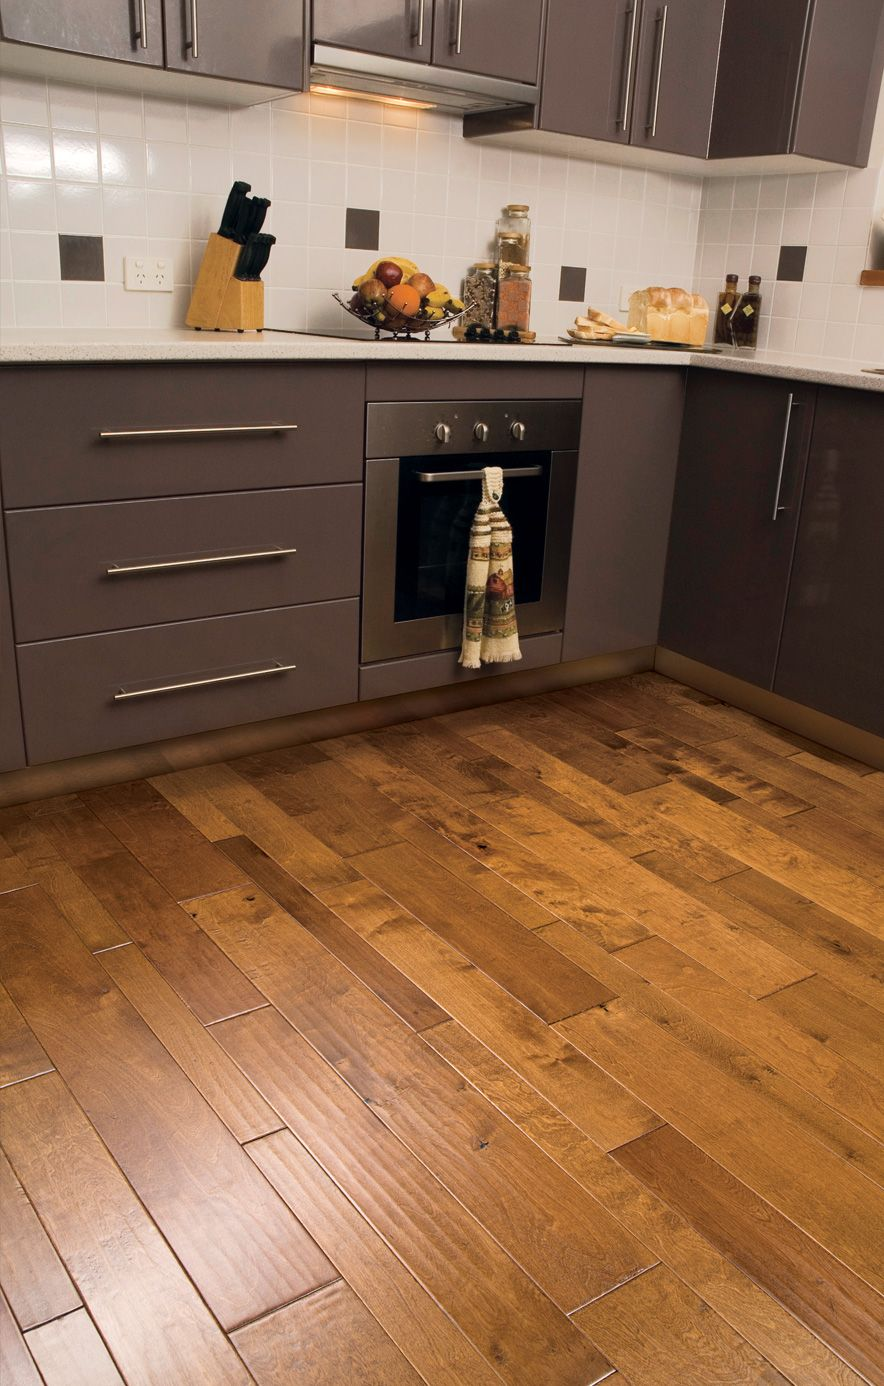 Empire Hardwood Floors sonoma canyon solid hardwood flooring dusk color Empire Rc 1805e This Engineered Hardwood Floor Features A Light To Dark Brown Hue That